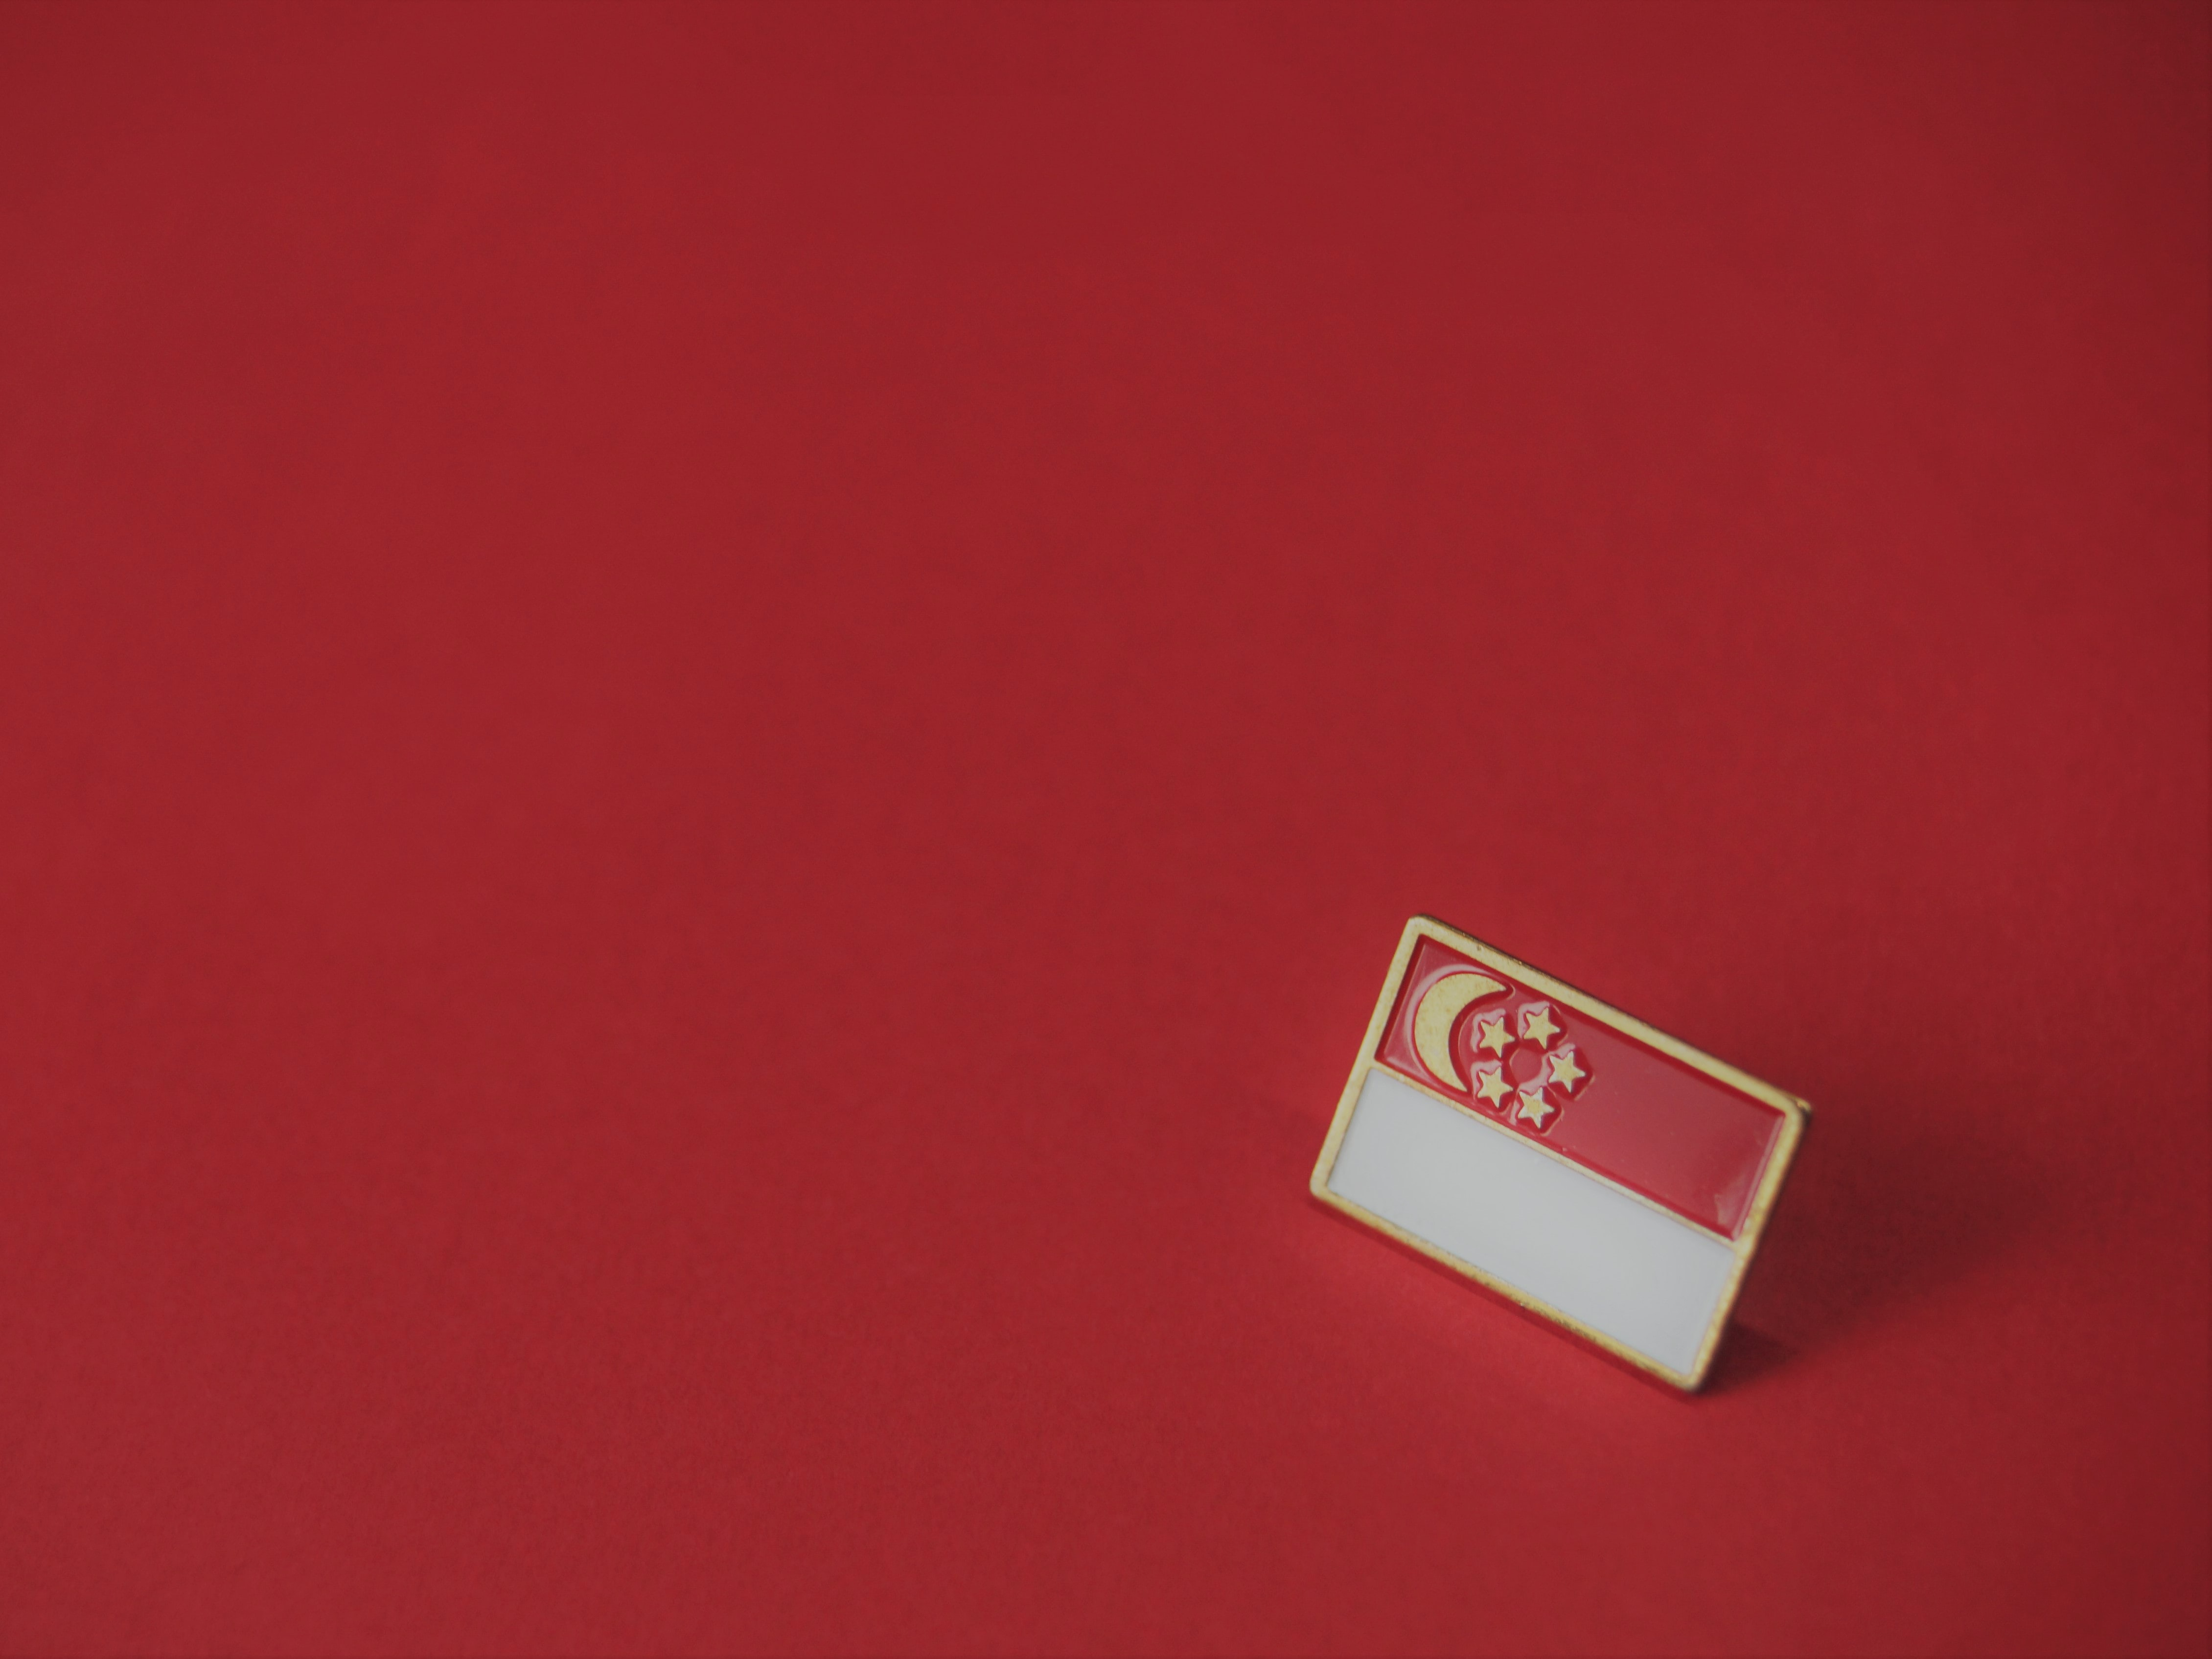 white and red flag pin